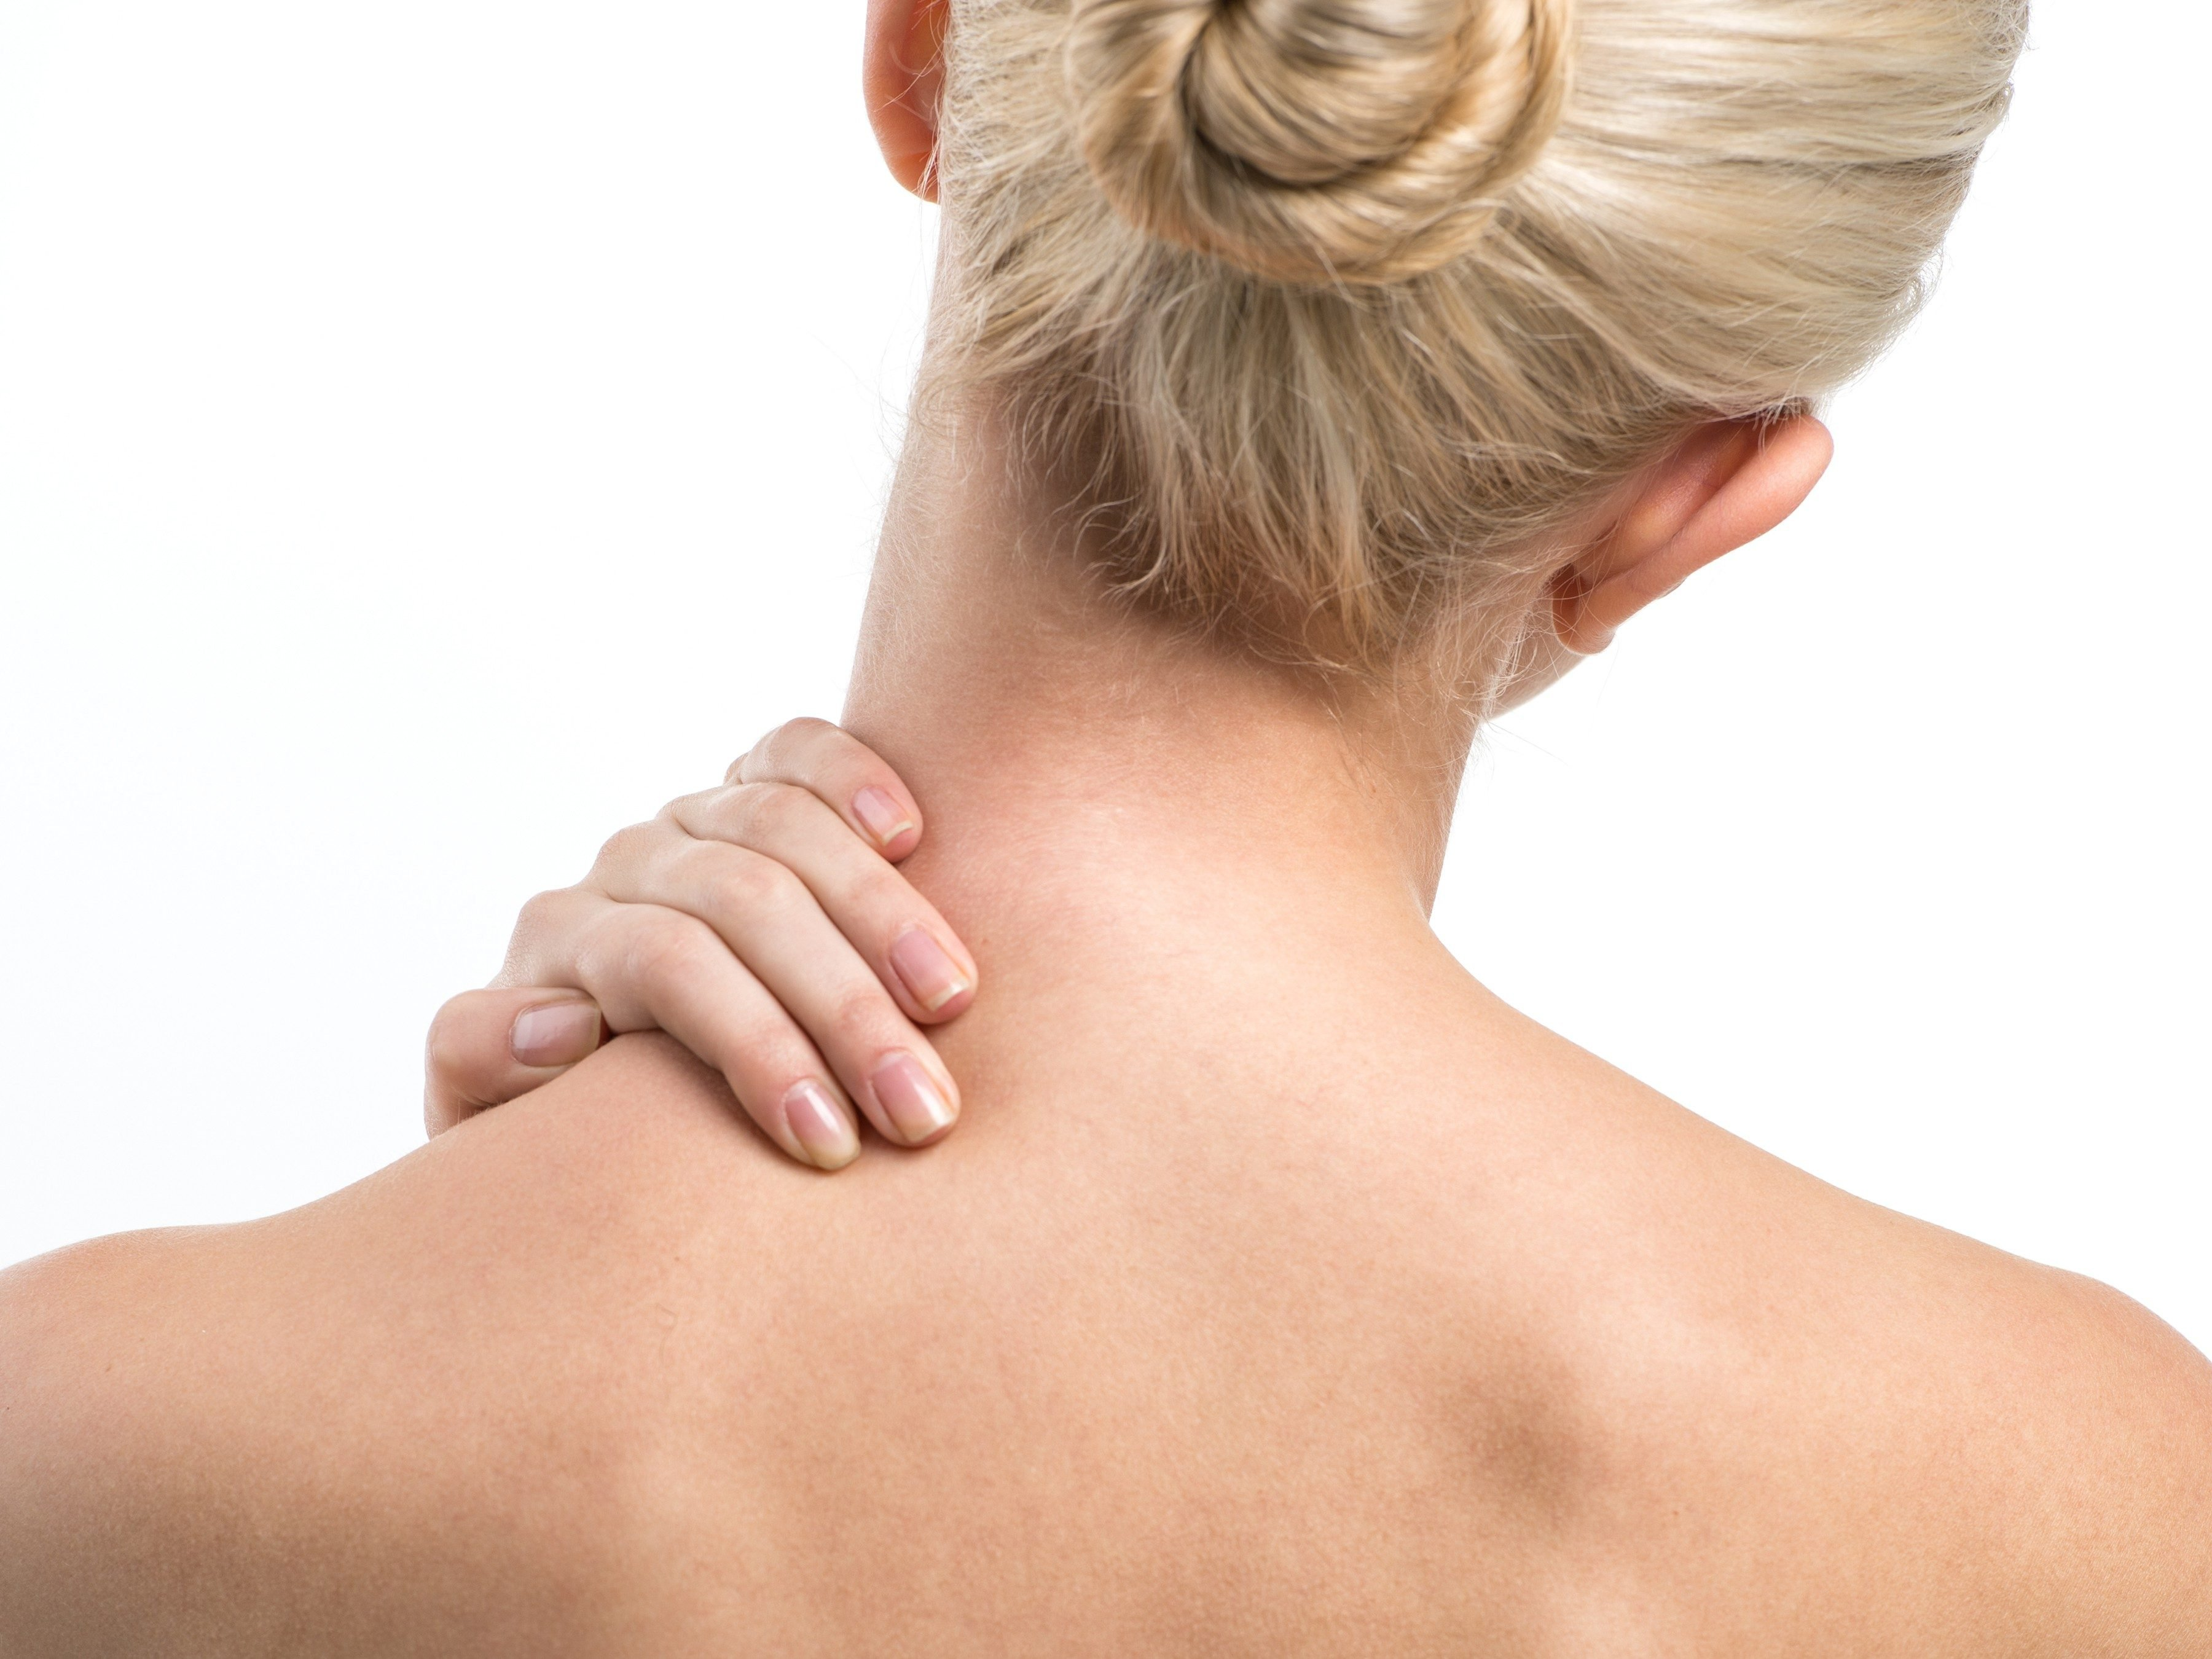 3. Massage sore muscles with essential oils.